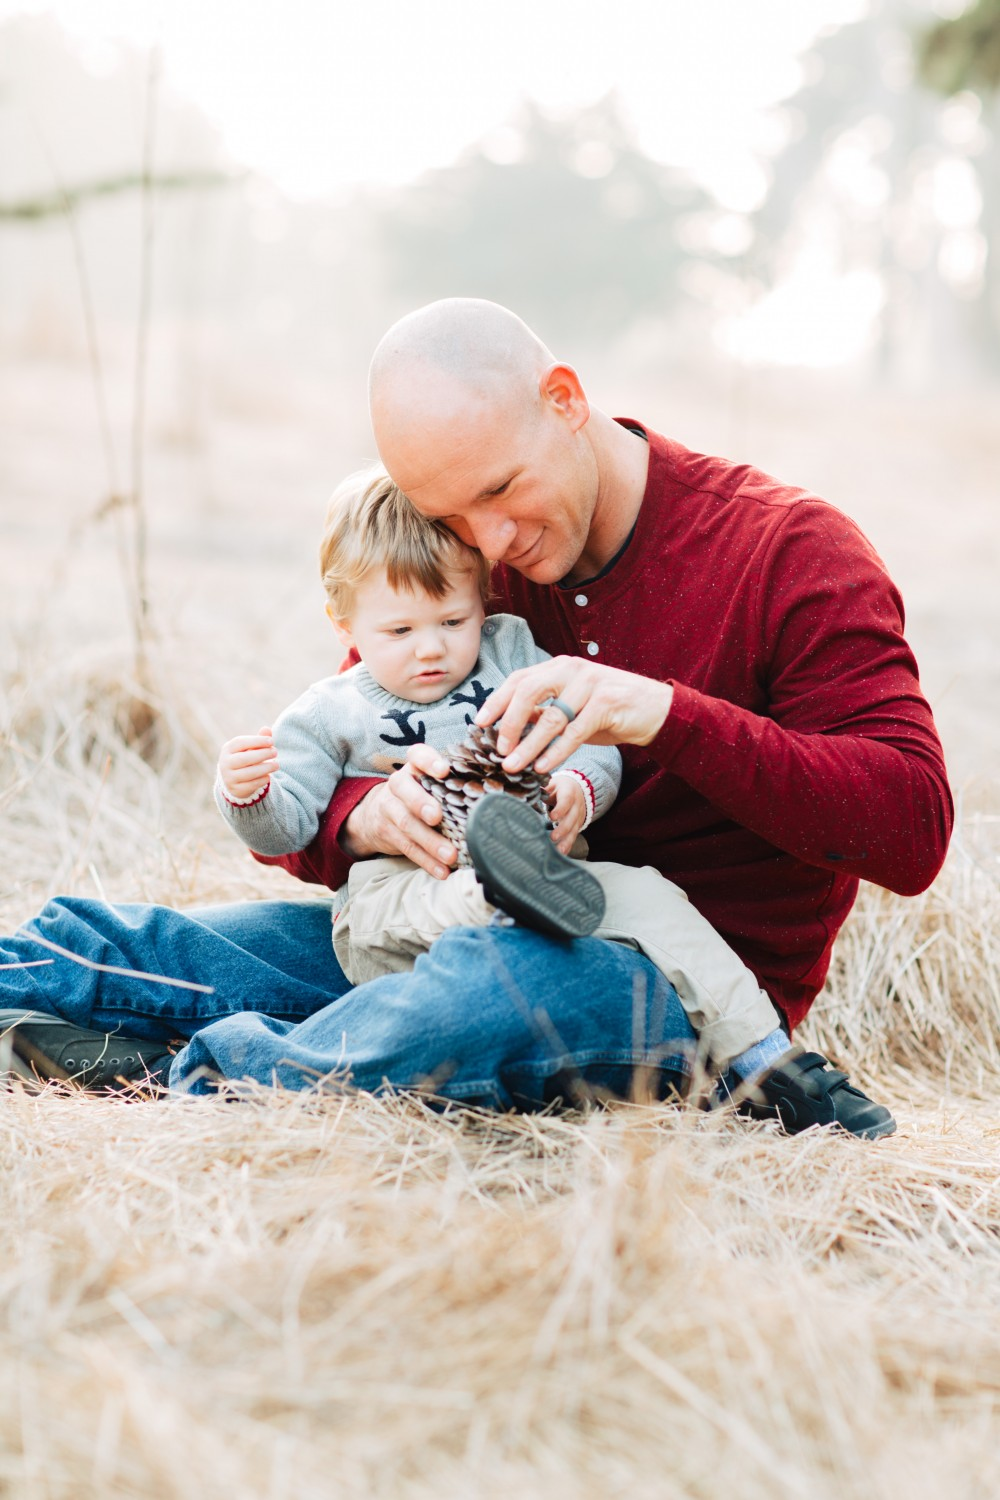 Family Holiday Card Photoshoot with Dad and Son - Have Need Want